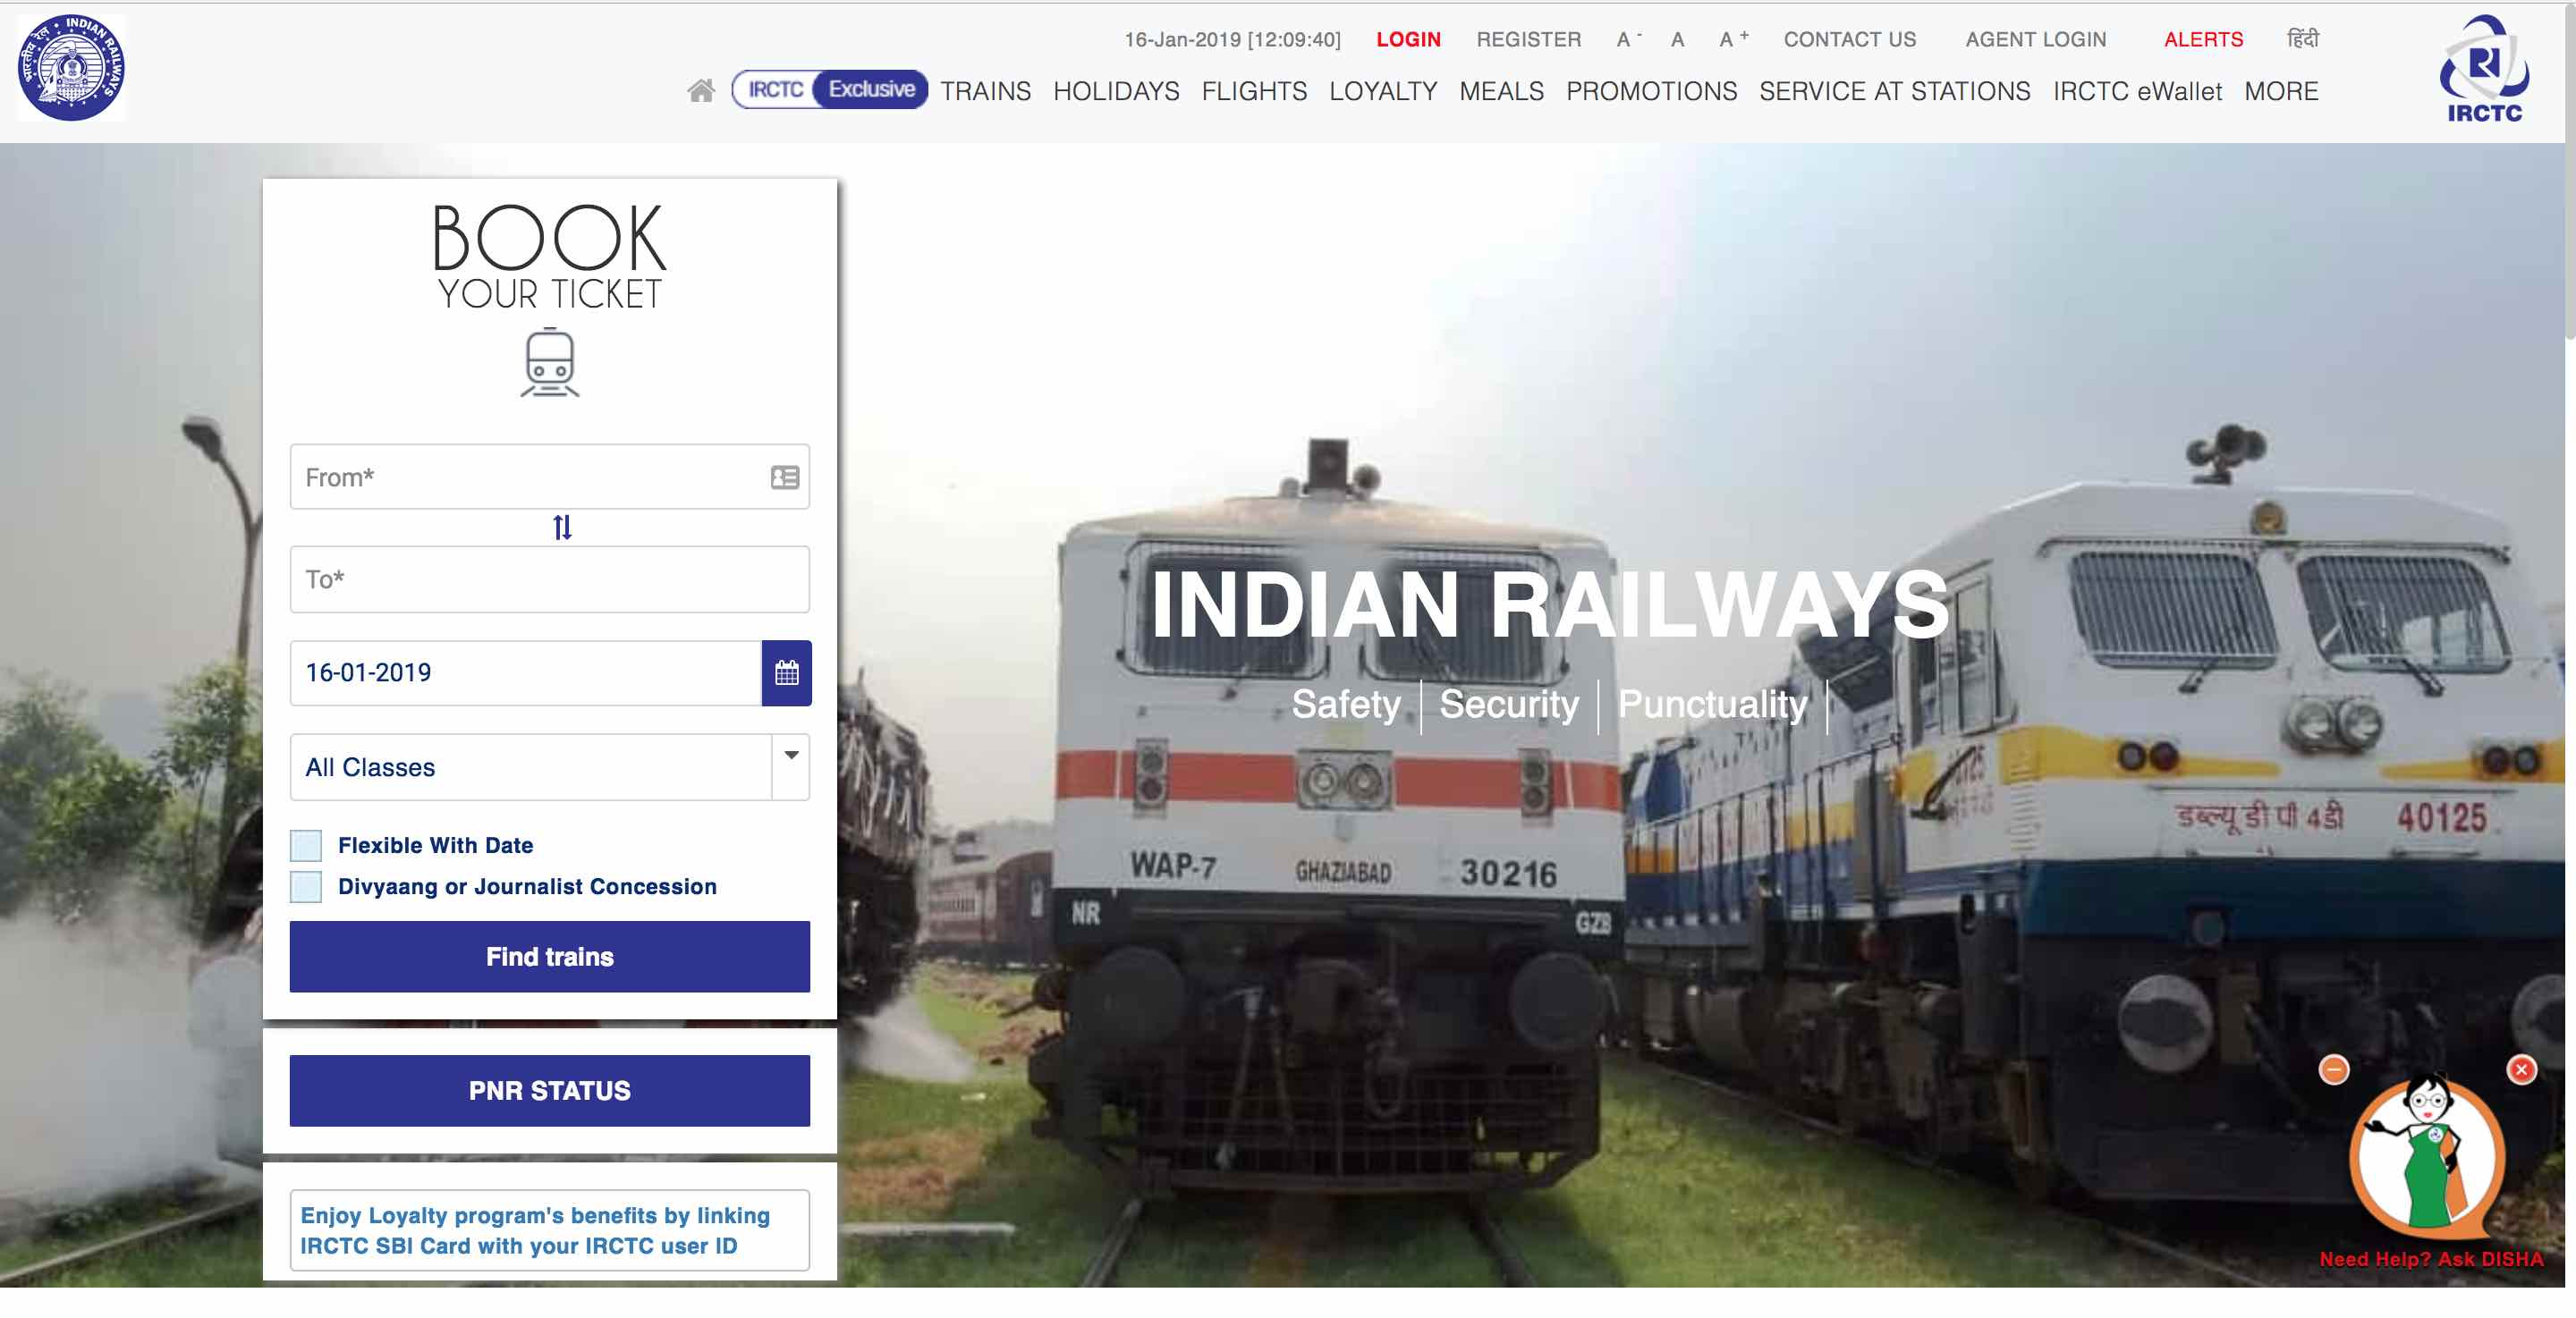 The IRCTC website homepage